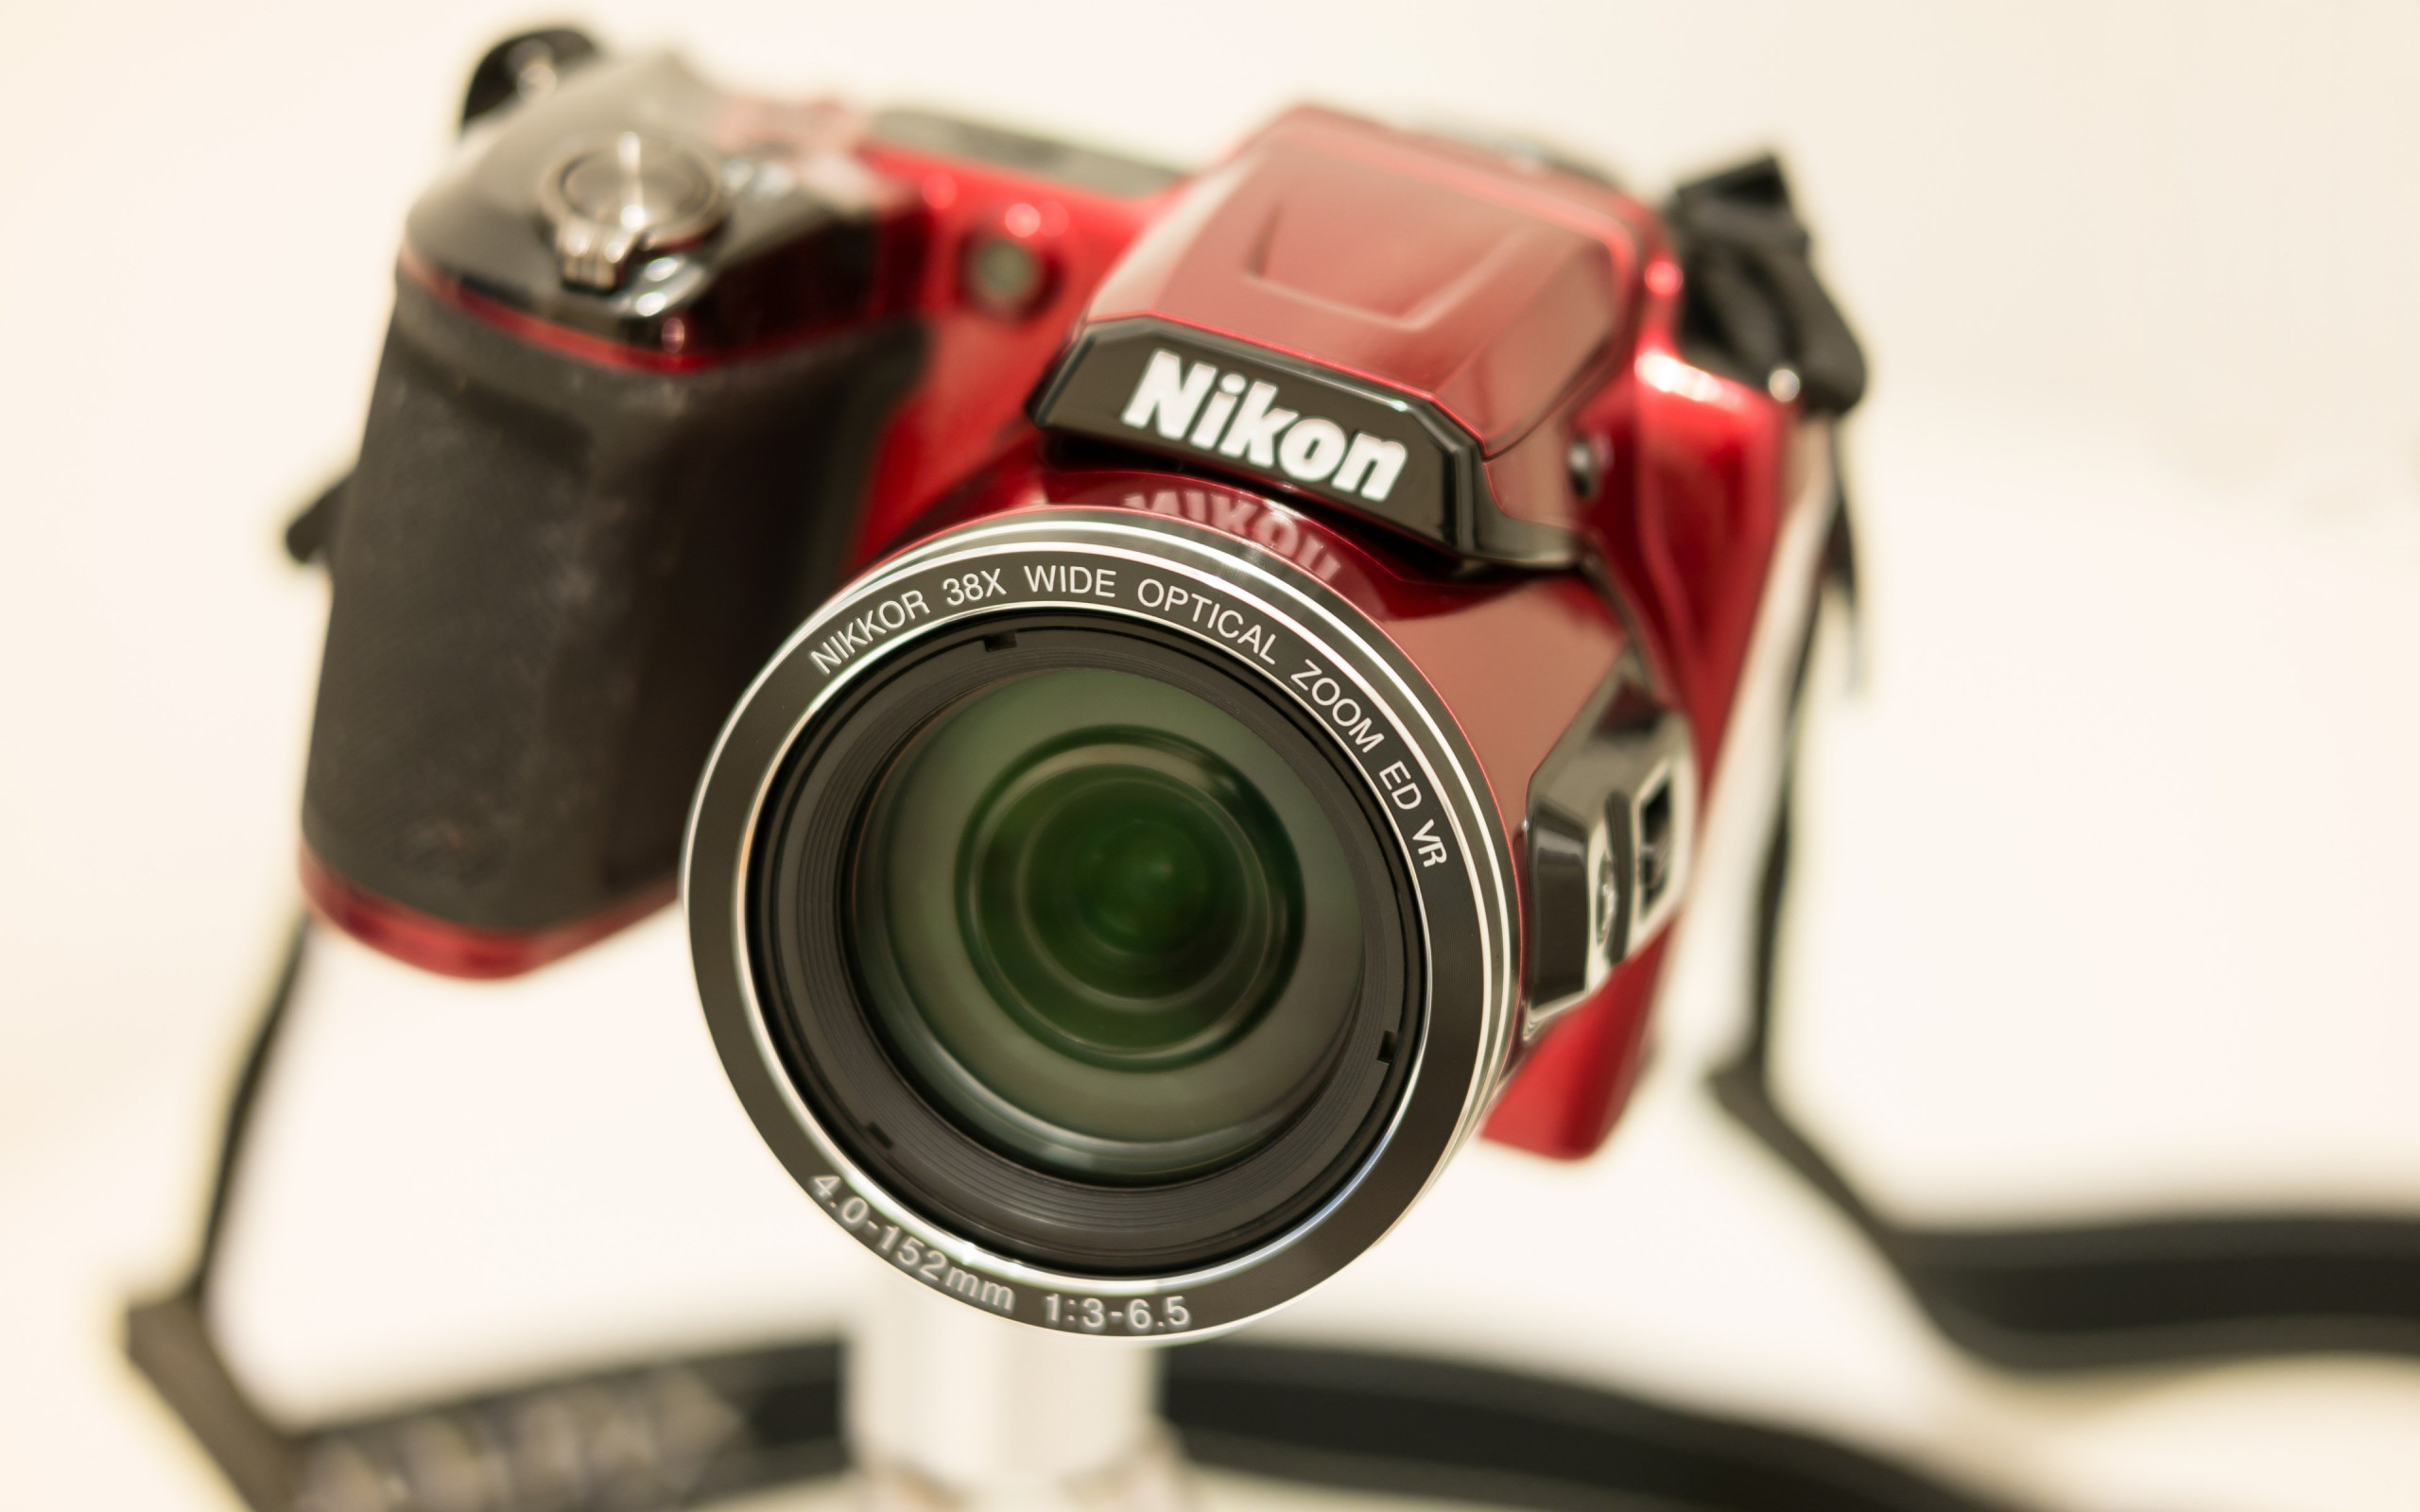 Nikon Camera with Nikkor lens | 2560x1600 wallpaper